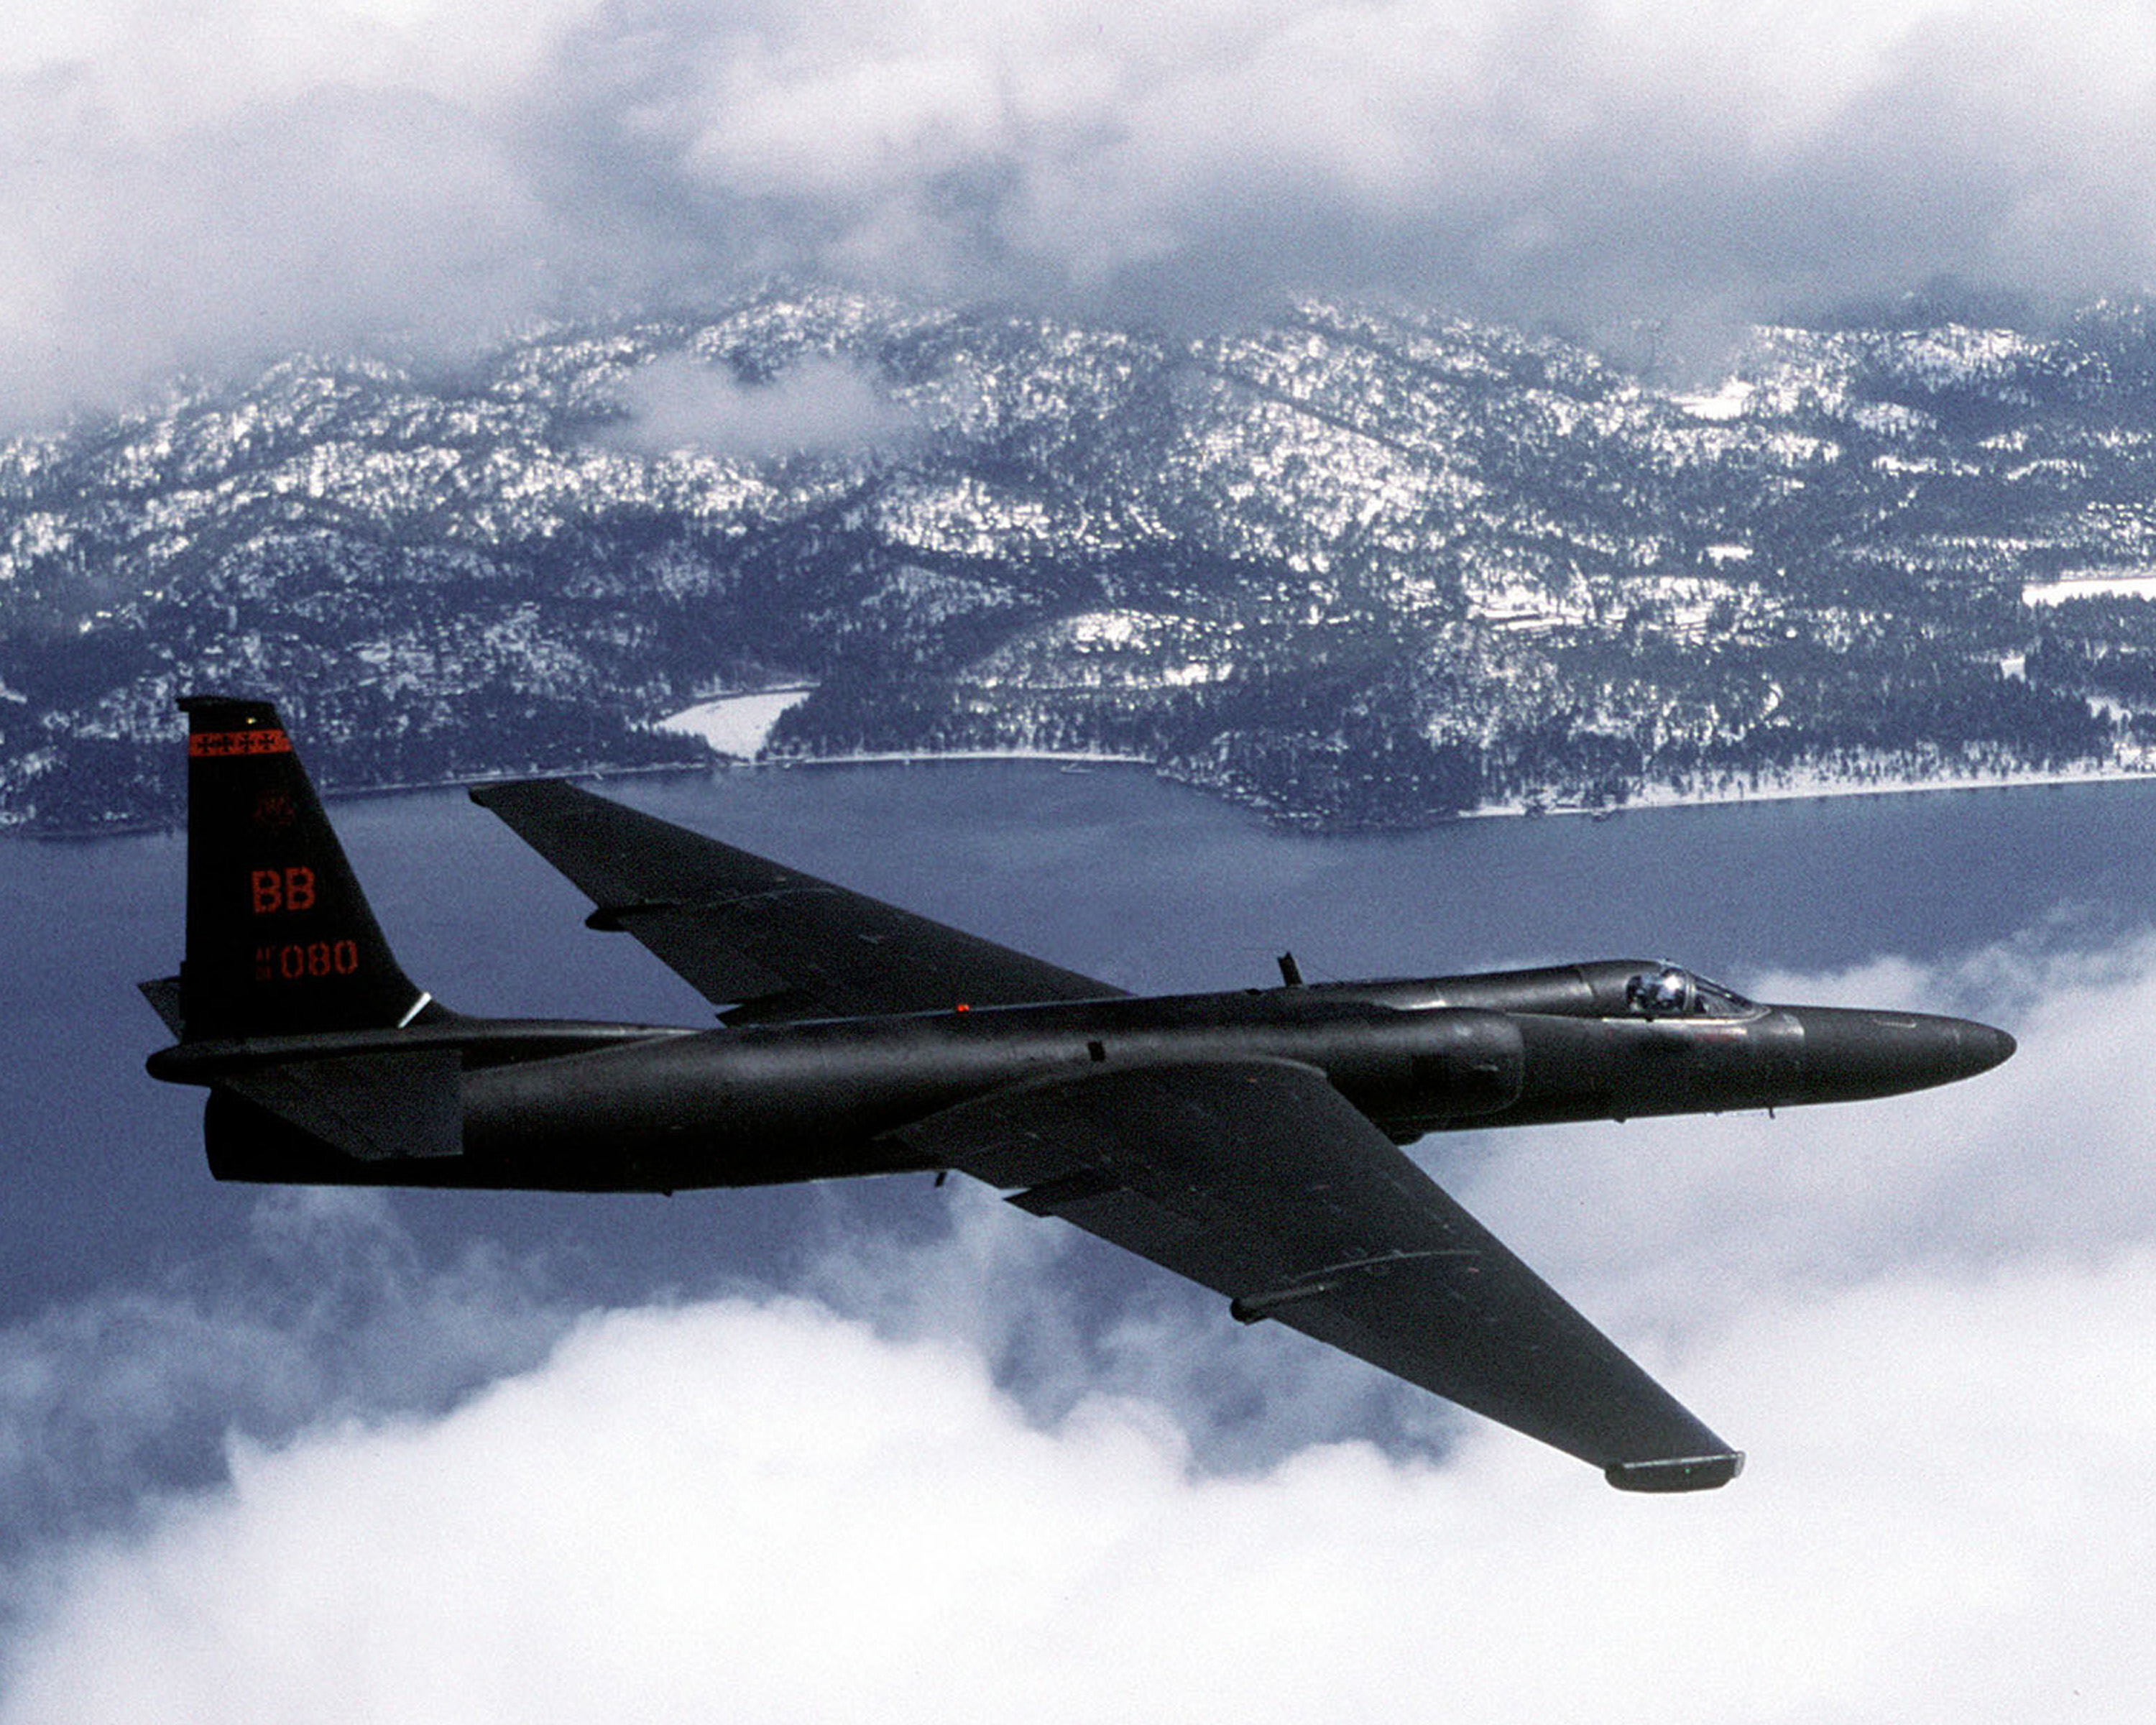 'U-2 Brute': Behind-the-Scenes Details of the CIA Spy-Plane Face-Off with the Soviets